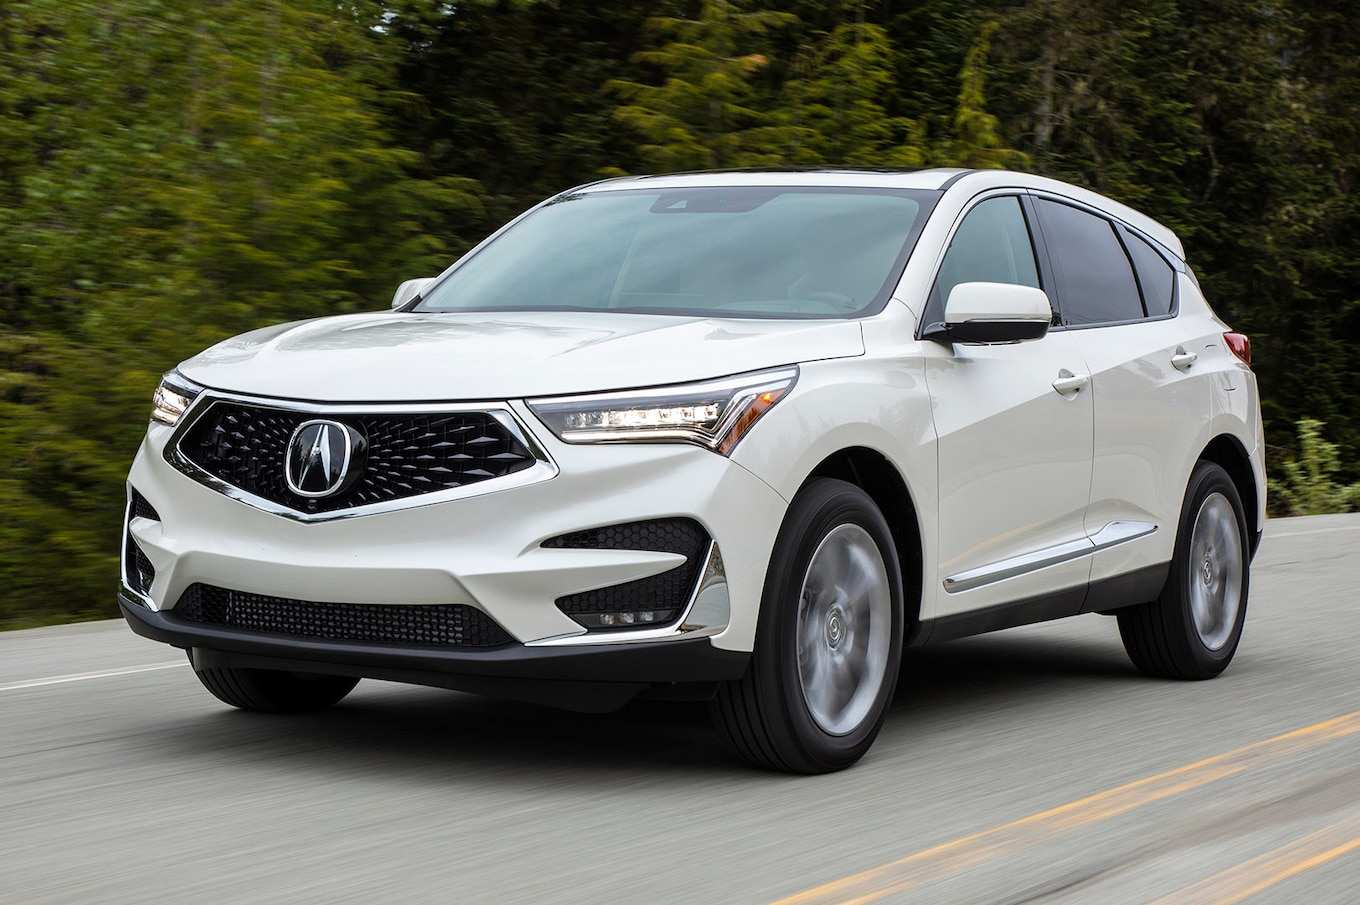 73 The The Acura Zdx 2019 Price First Drive Images with The Acura Zdx 2019 Price First Drive